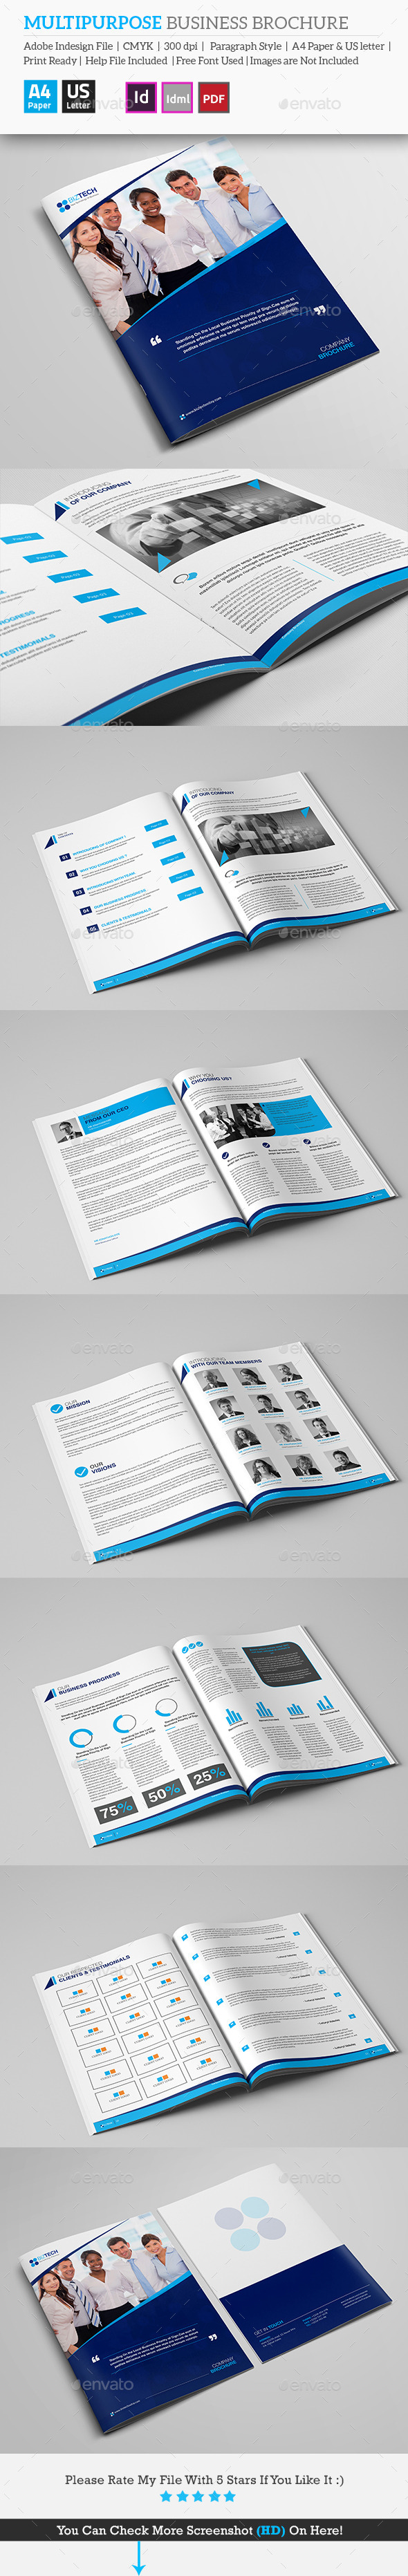 Multipurpose Business Brochure - Brochures Print Templates